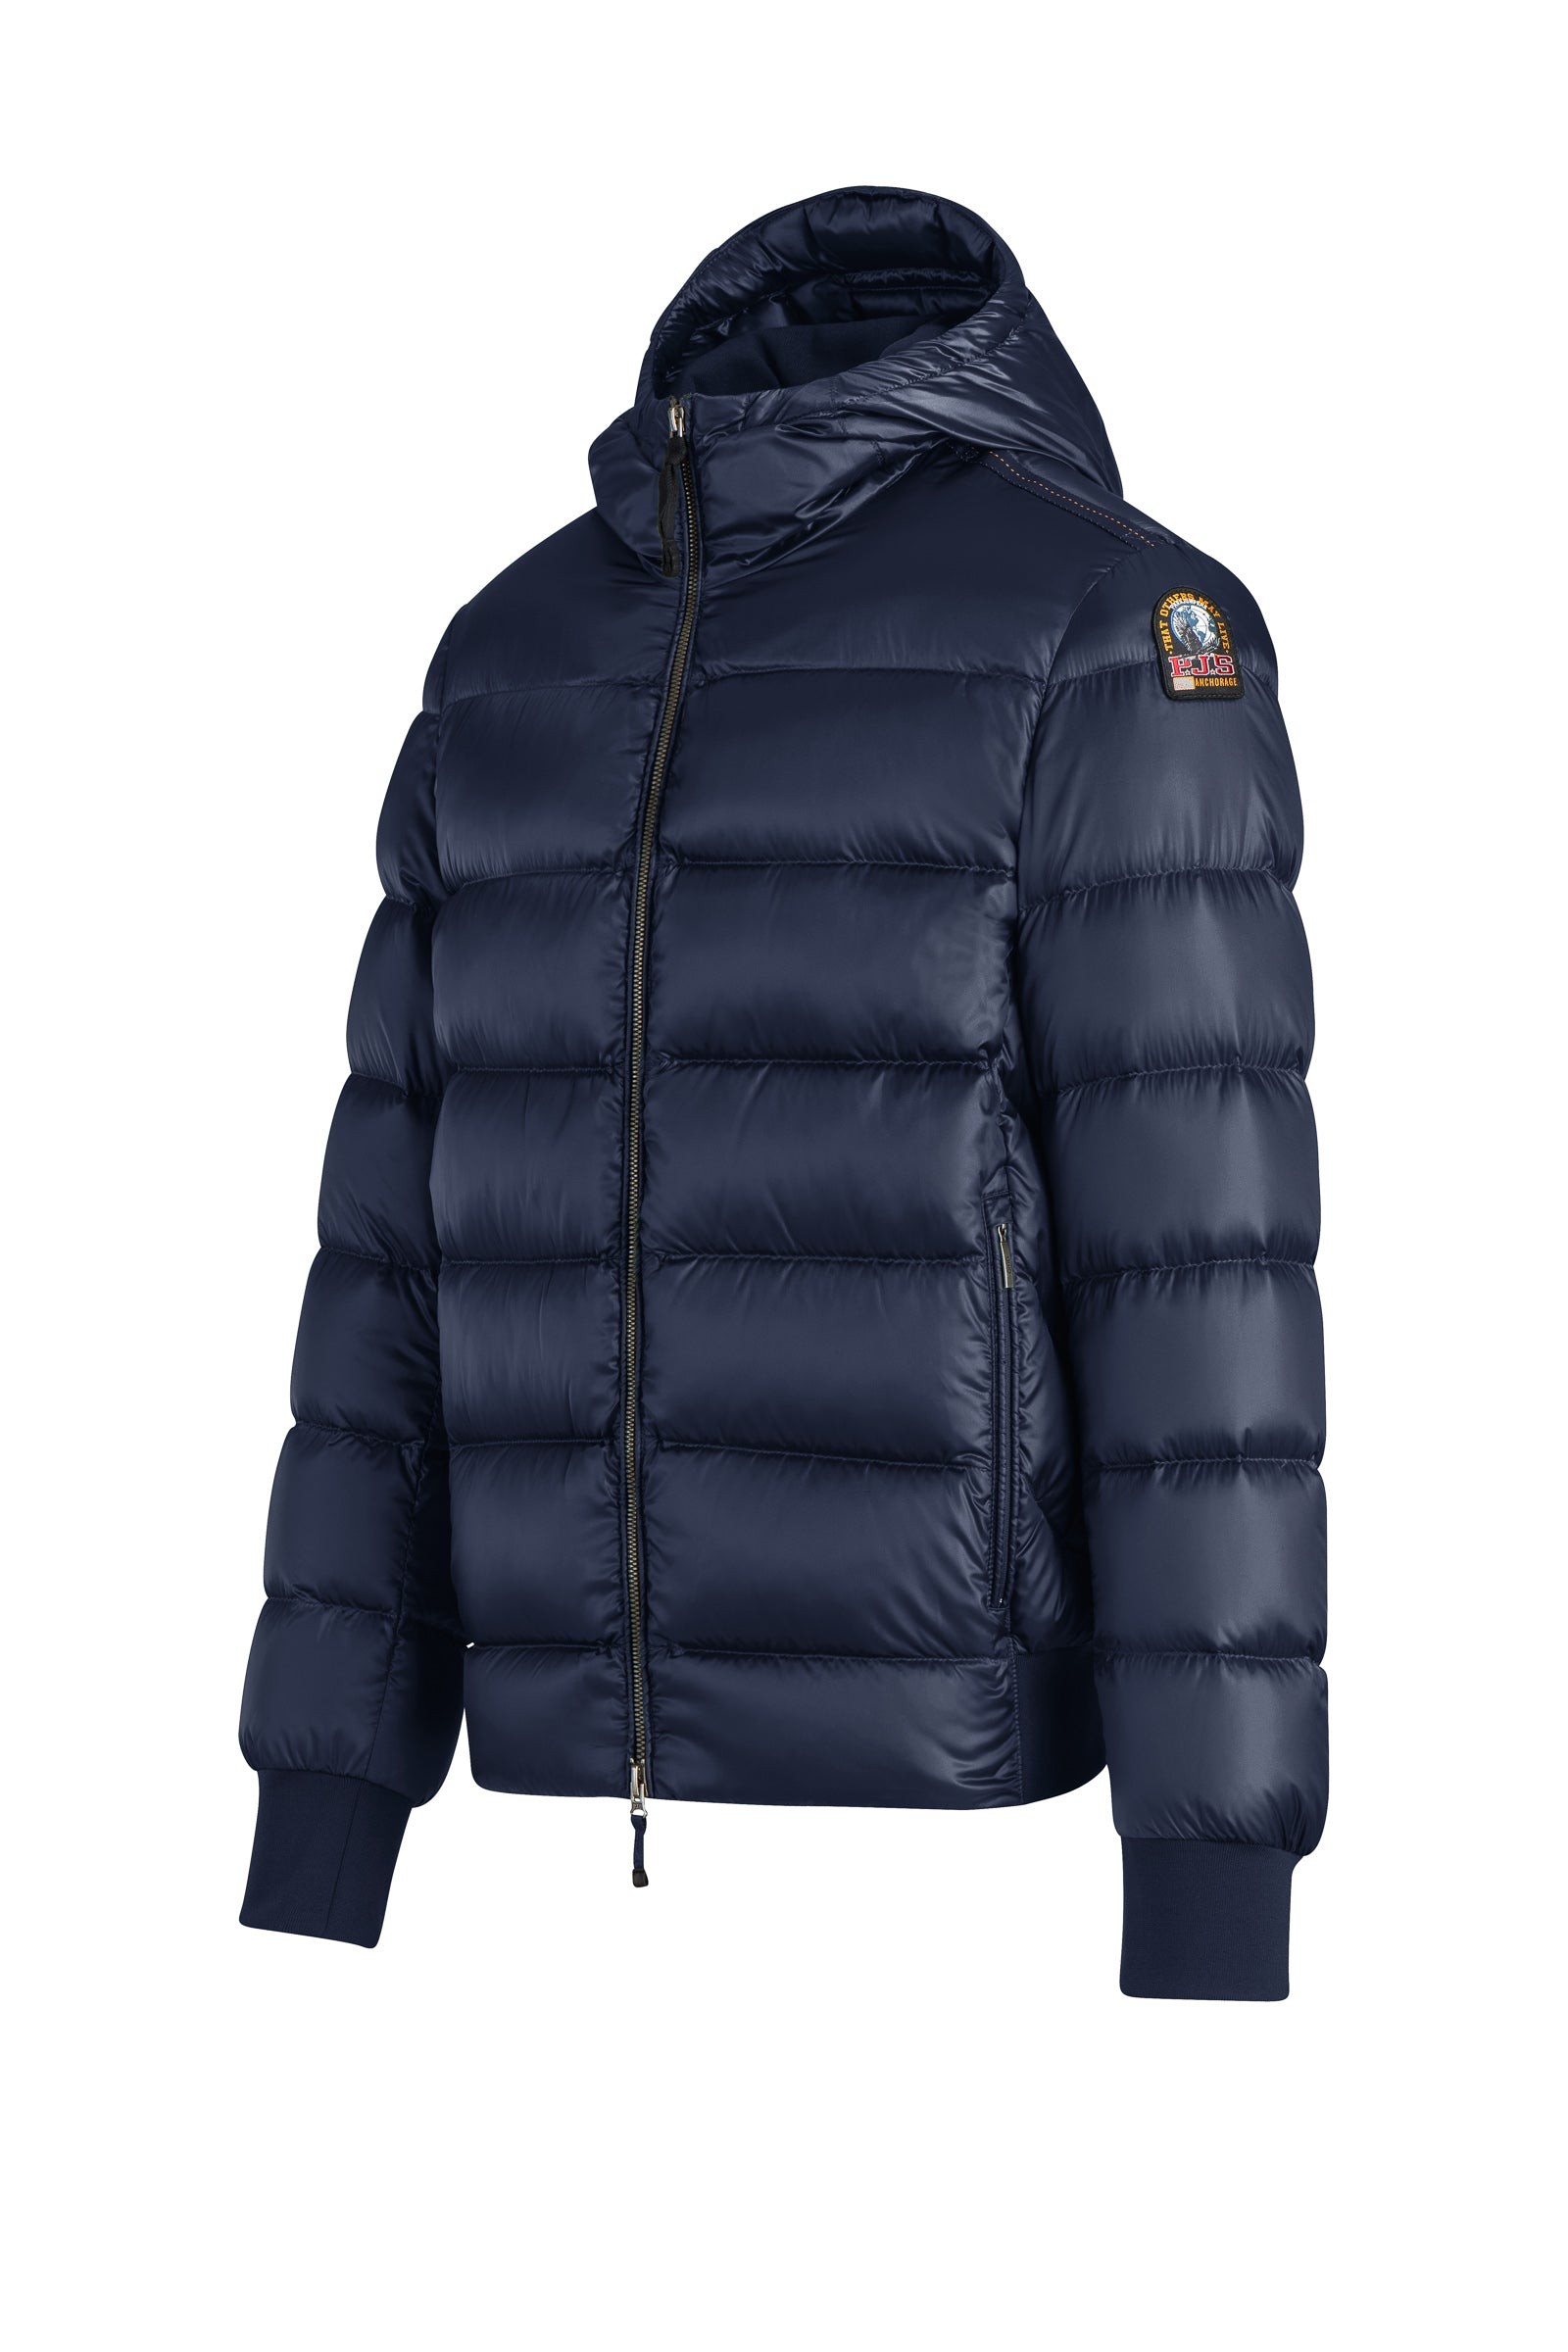 Parajumpers Pharrell Blue Coat